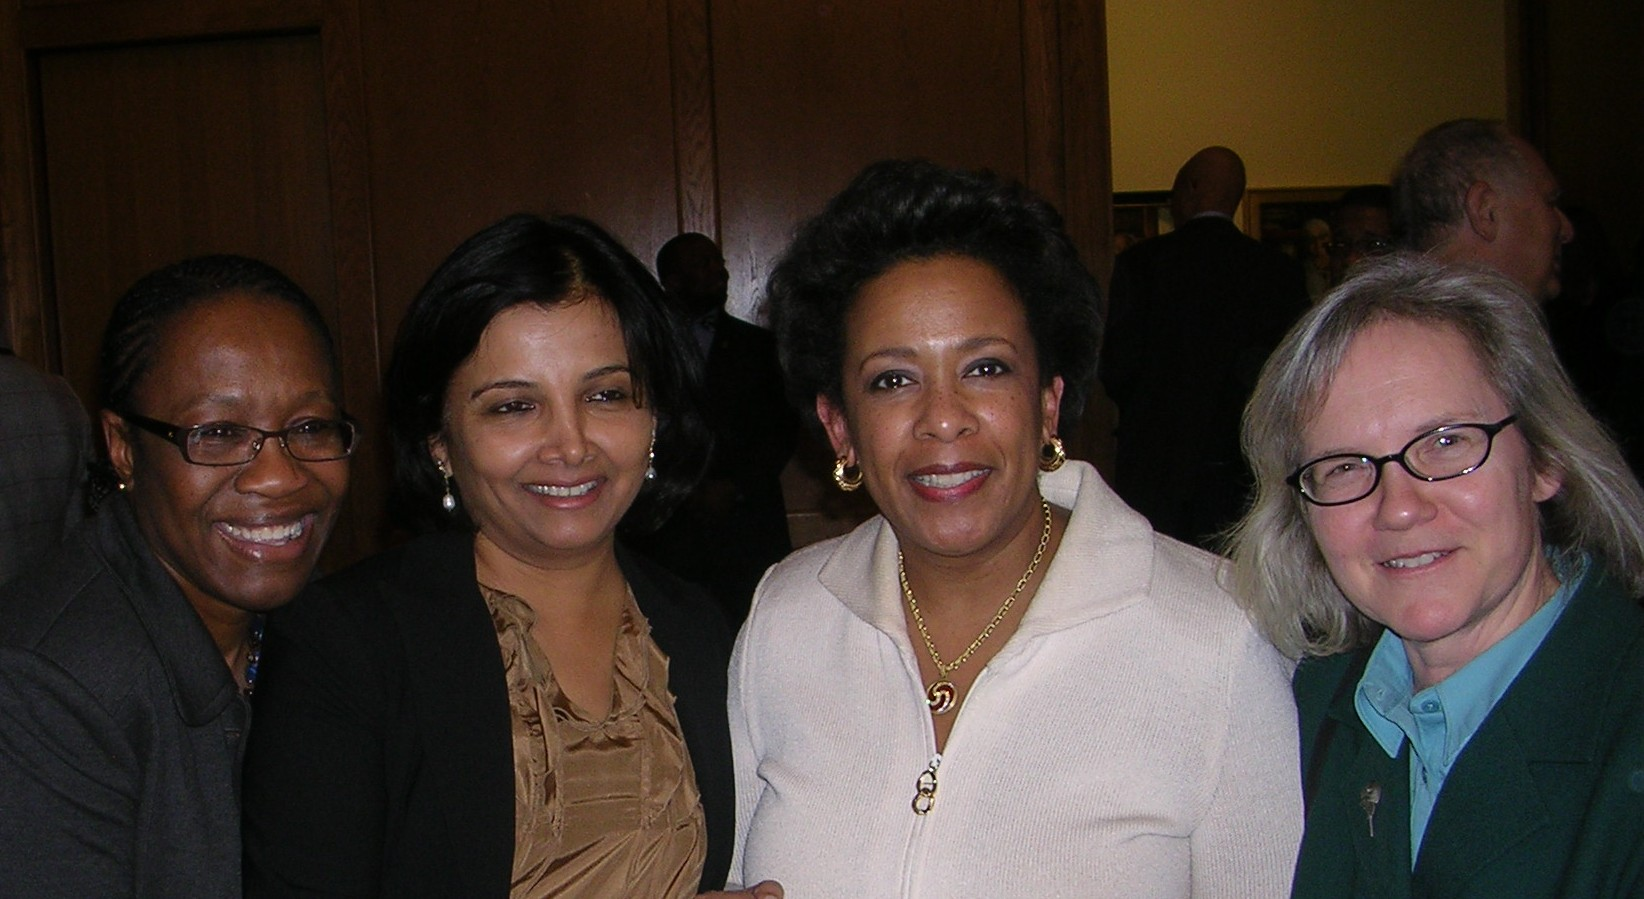 Stephen hargrove and loretta lynch pictures of wedding